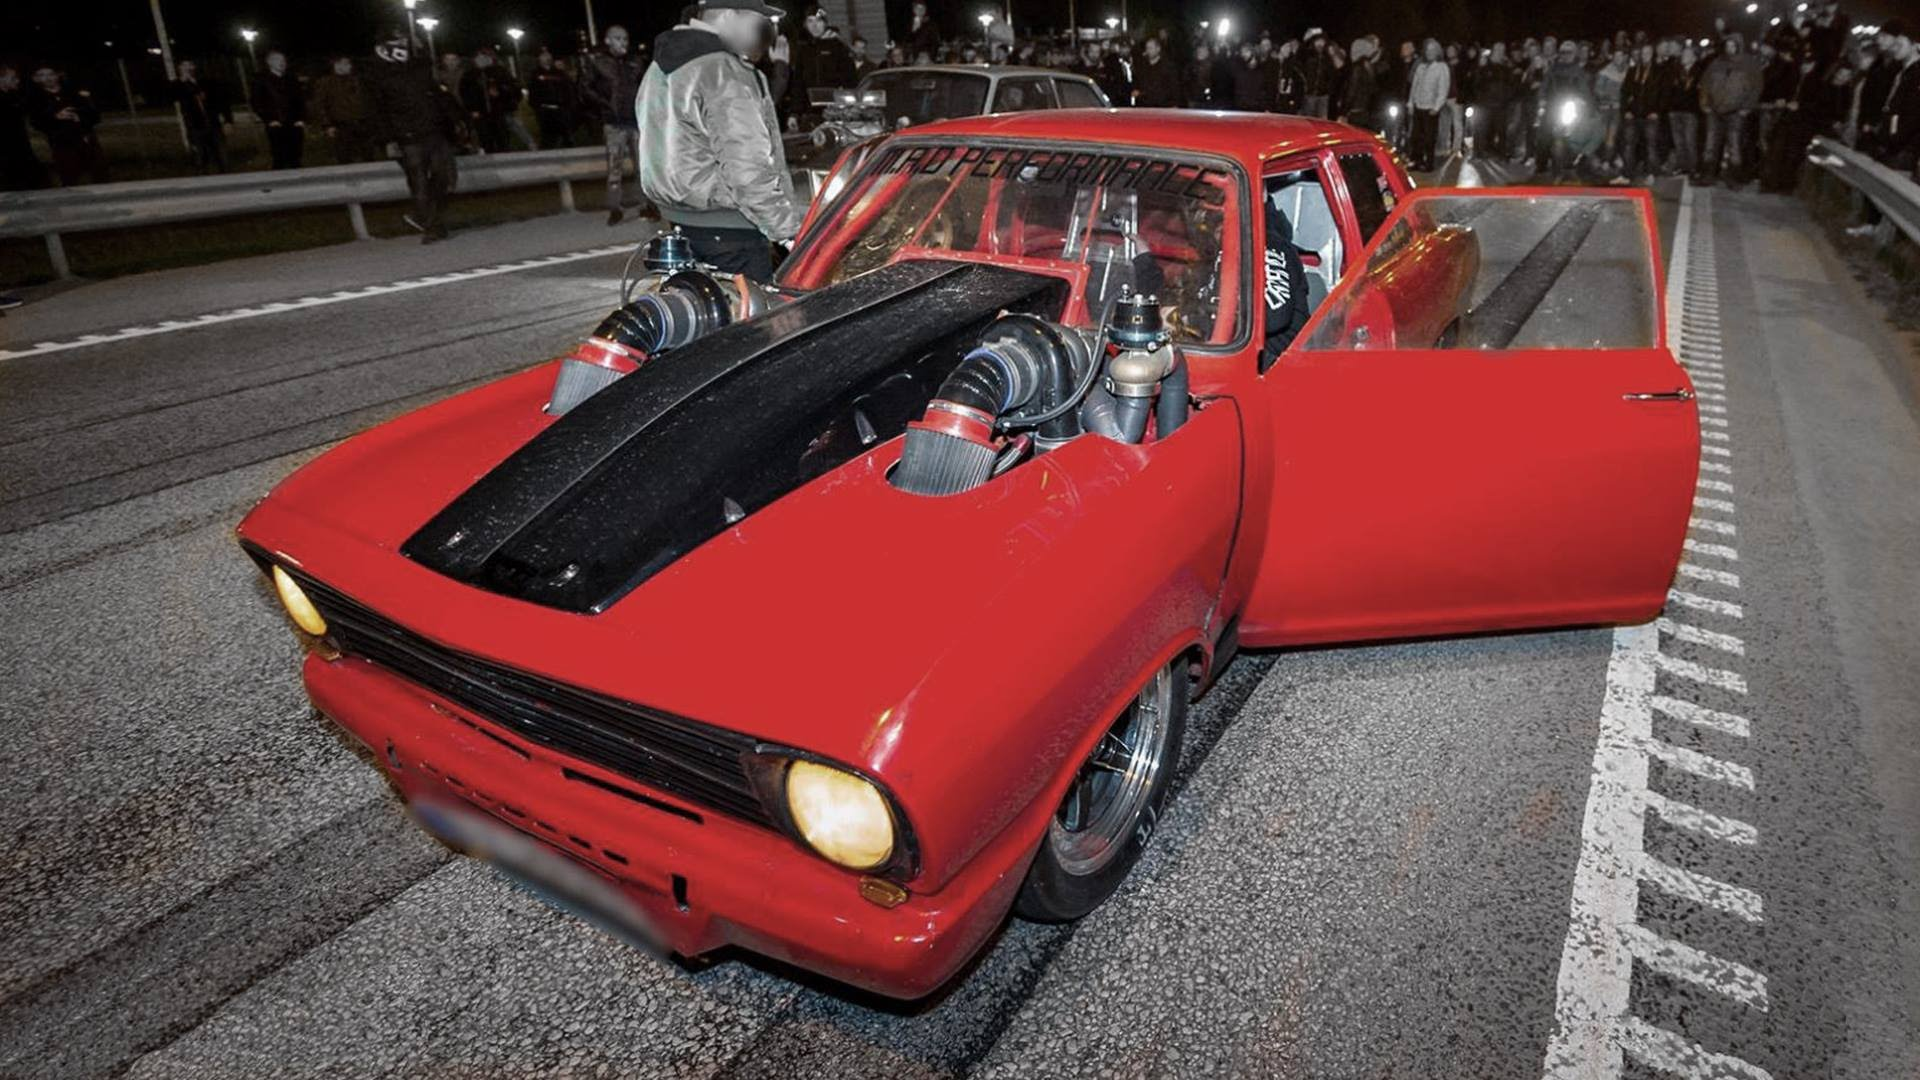 Twin-Turbo Opel Tears Up the Streets